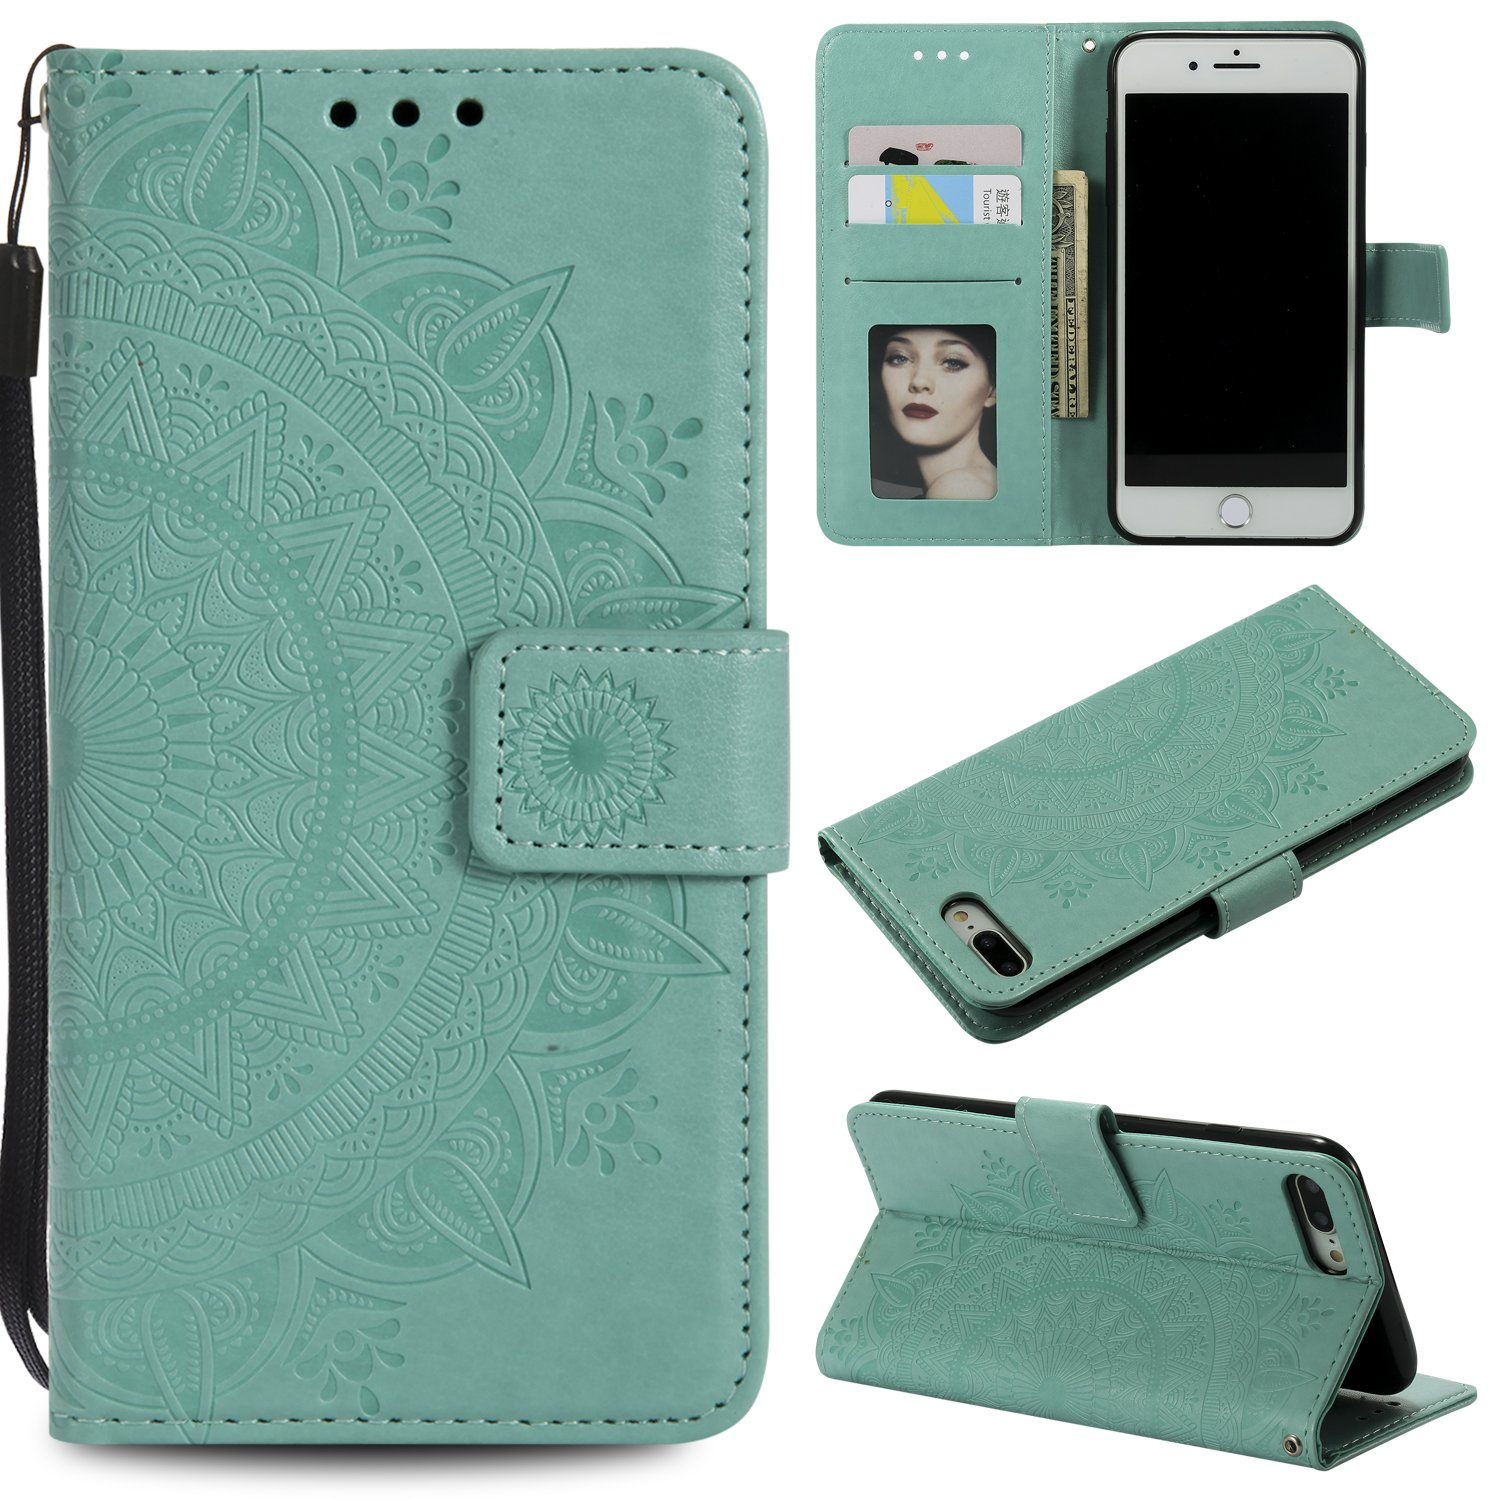 Floral Wallet Case for iPhone 7 Plus 5.5'',Strap Flip Case for iPhone 8 Plus 5.5'',Leecase Embossed Totem Flower Design Pu Leather Bookstyle Stand Flip Case for iPhone 7 Plus /8 Plus 5.5''-Green